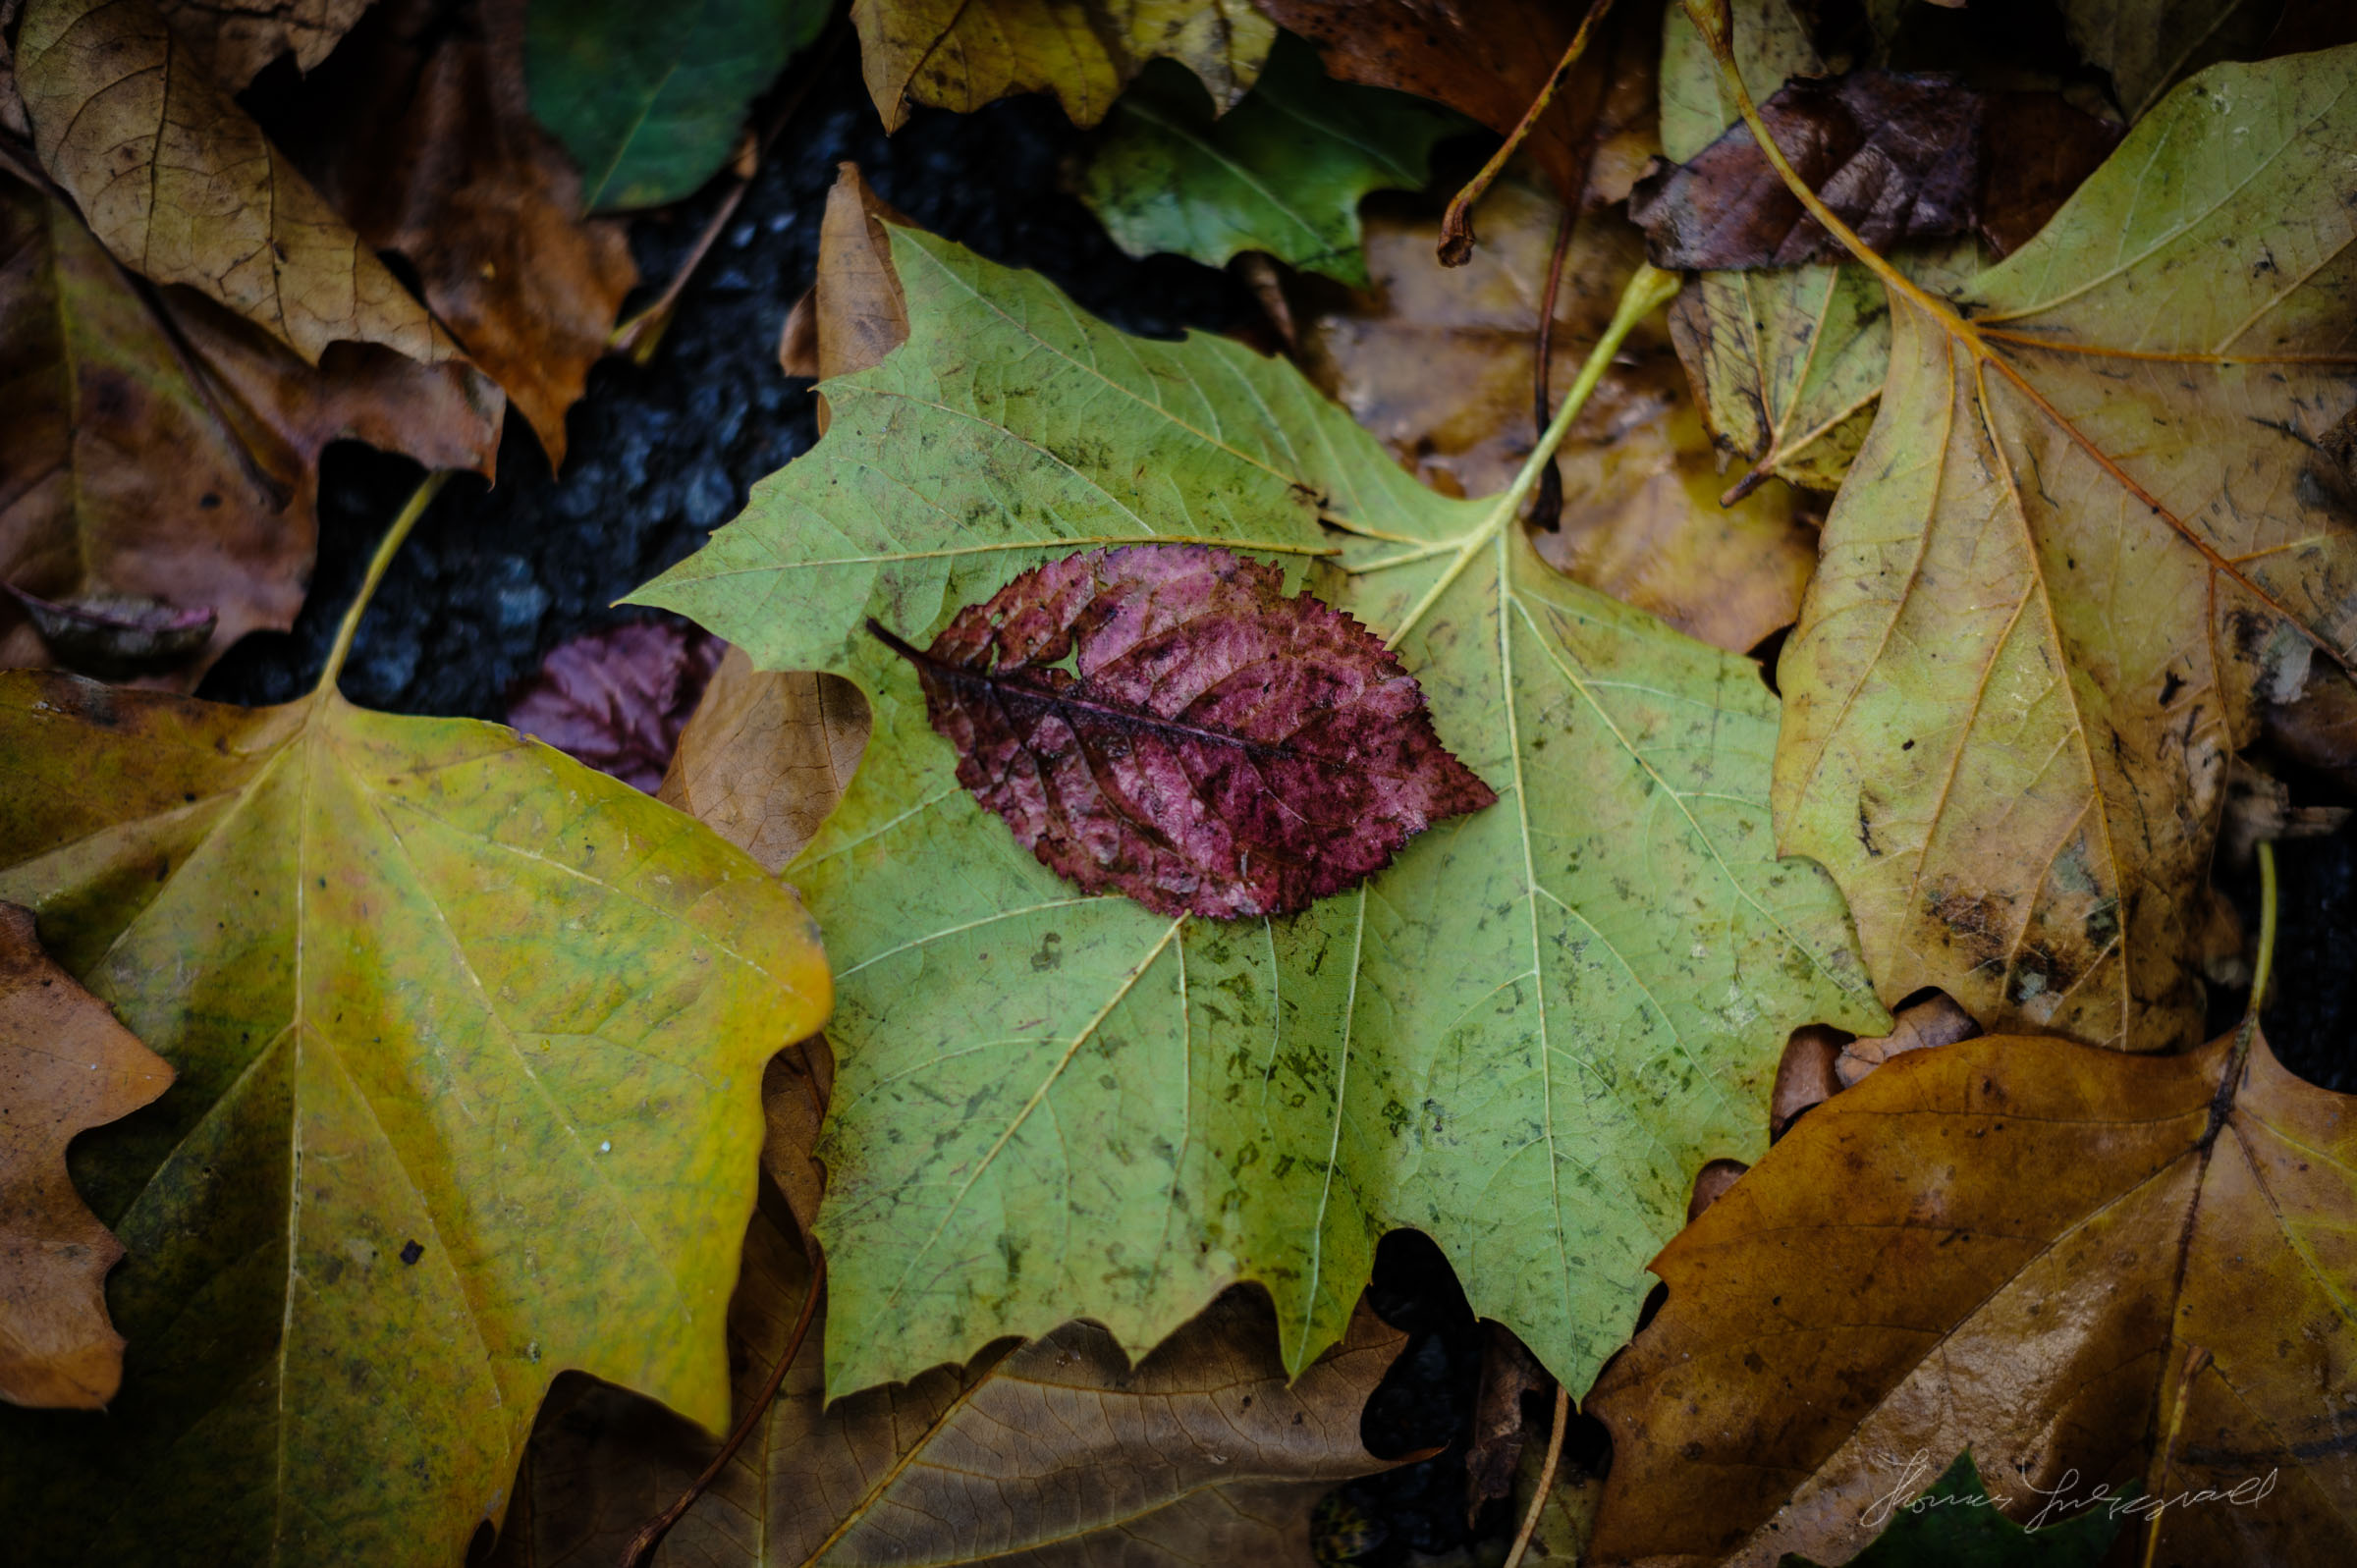 A single red leaf stands out on the background of other fallen autumn leaves